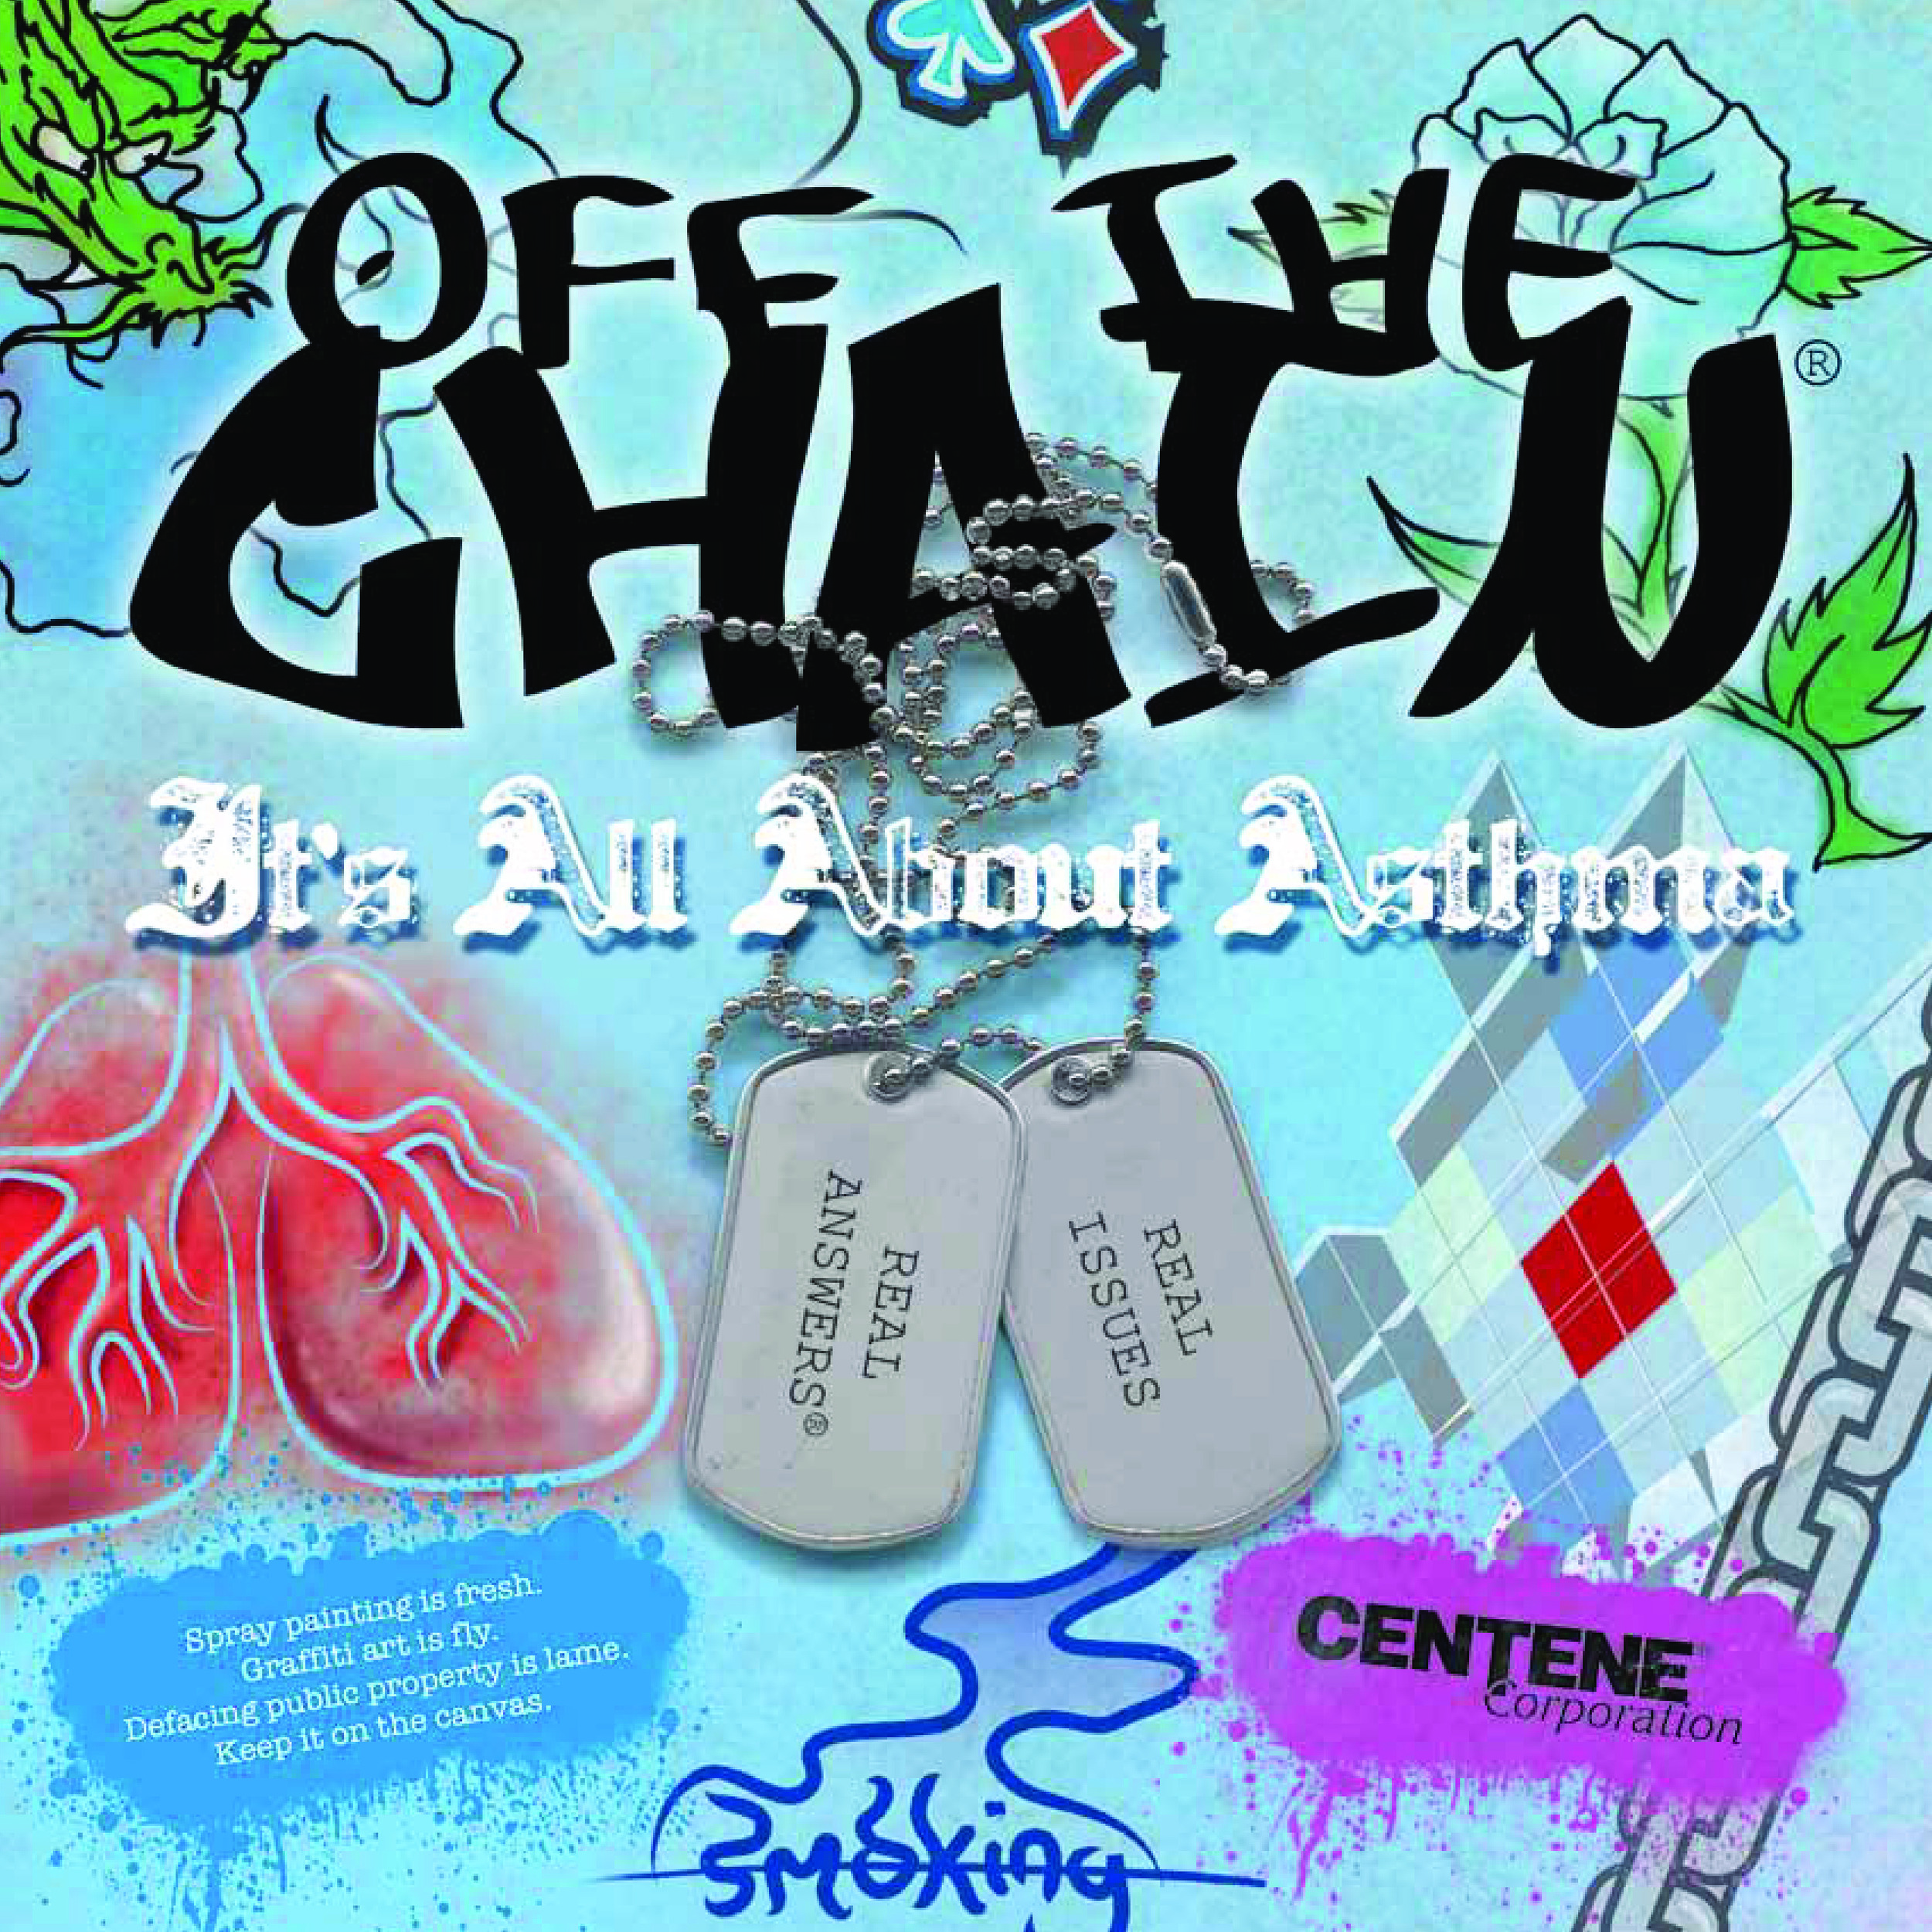 OFF THE CHAIN: It's All About Asthma